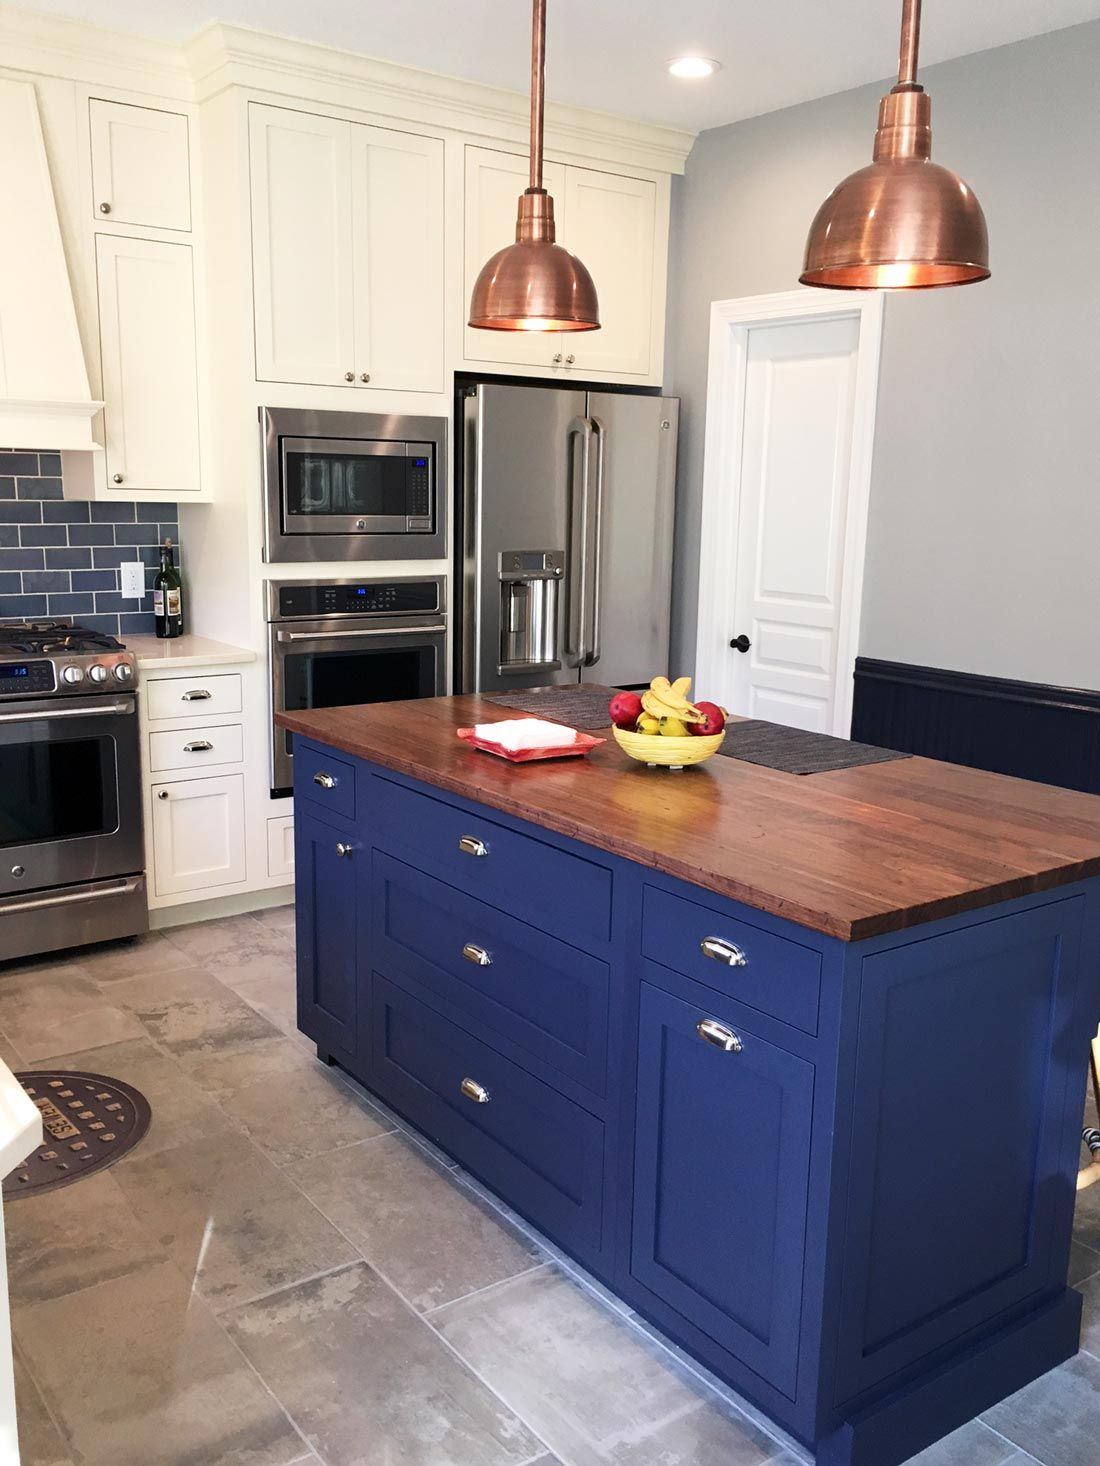 Blue And Copper Subway Tile Kitchen With Images Kitchen Tiles